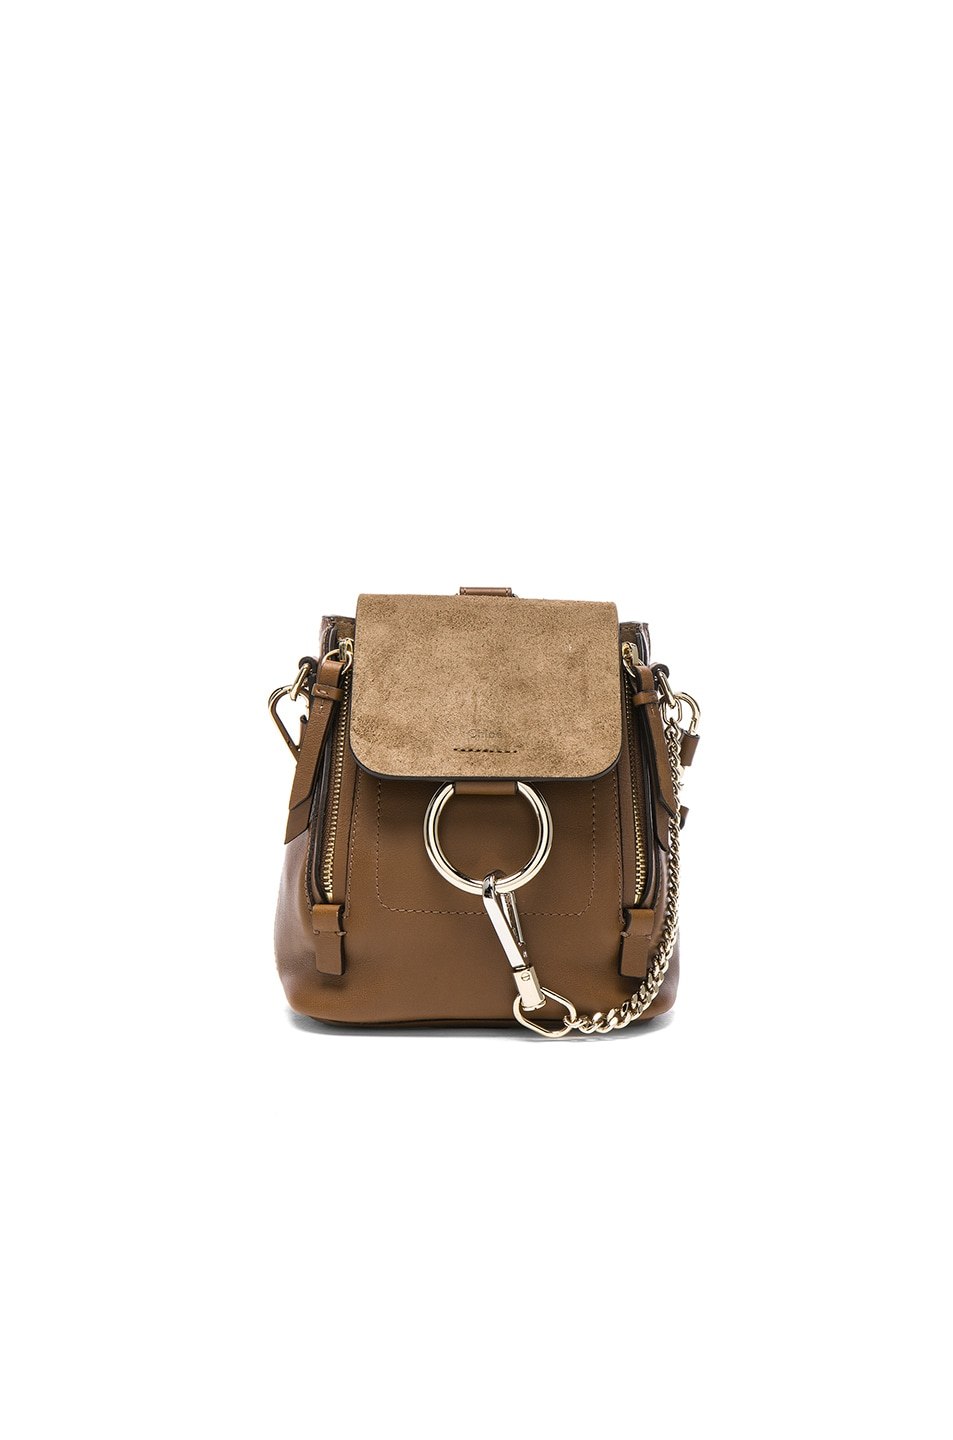 c36d7a37b2 Image 1 of Chloe Mini Faye Suede   Calfskin Backpack in Woody Khaki